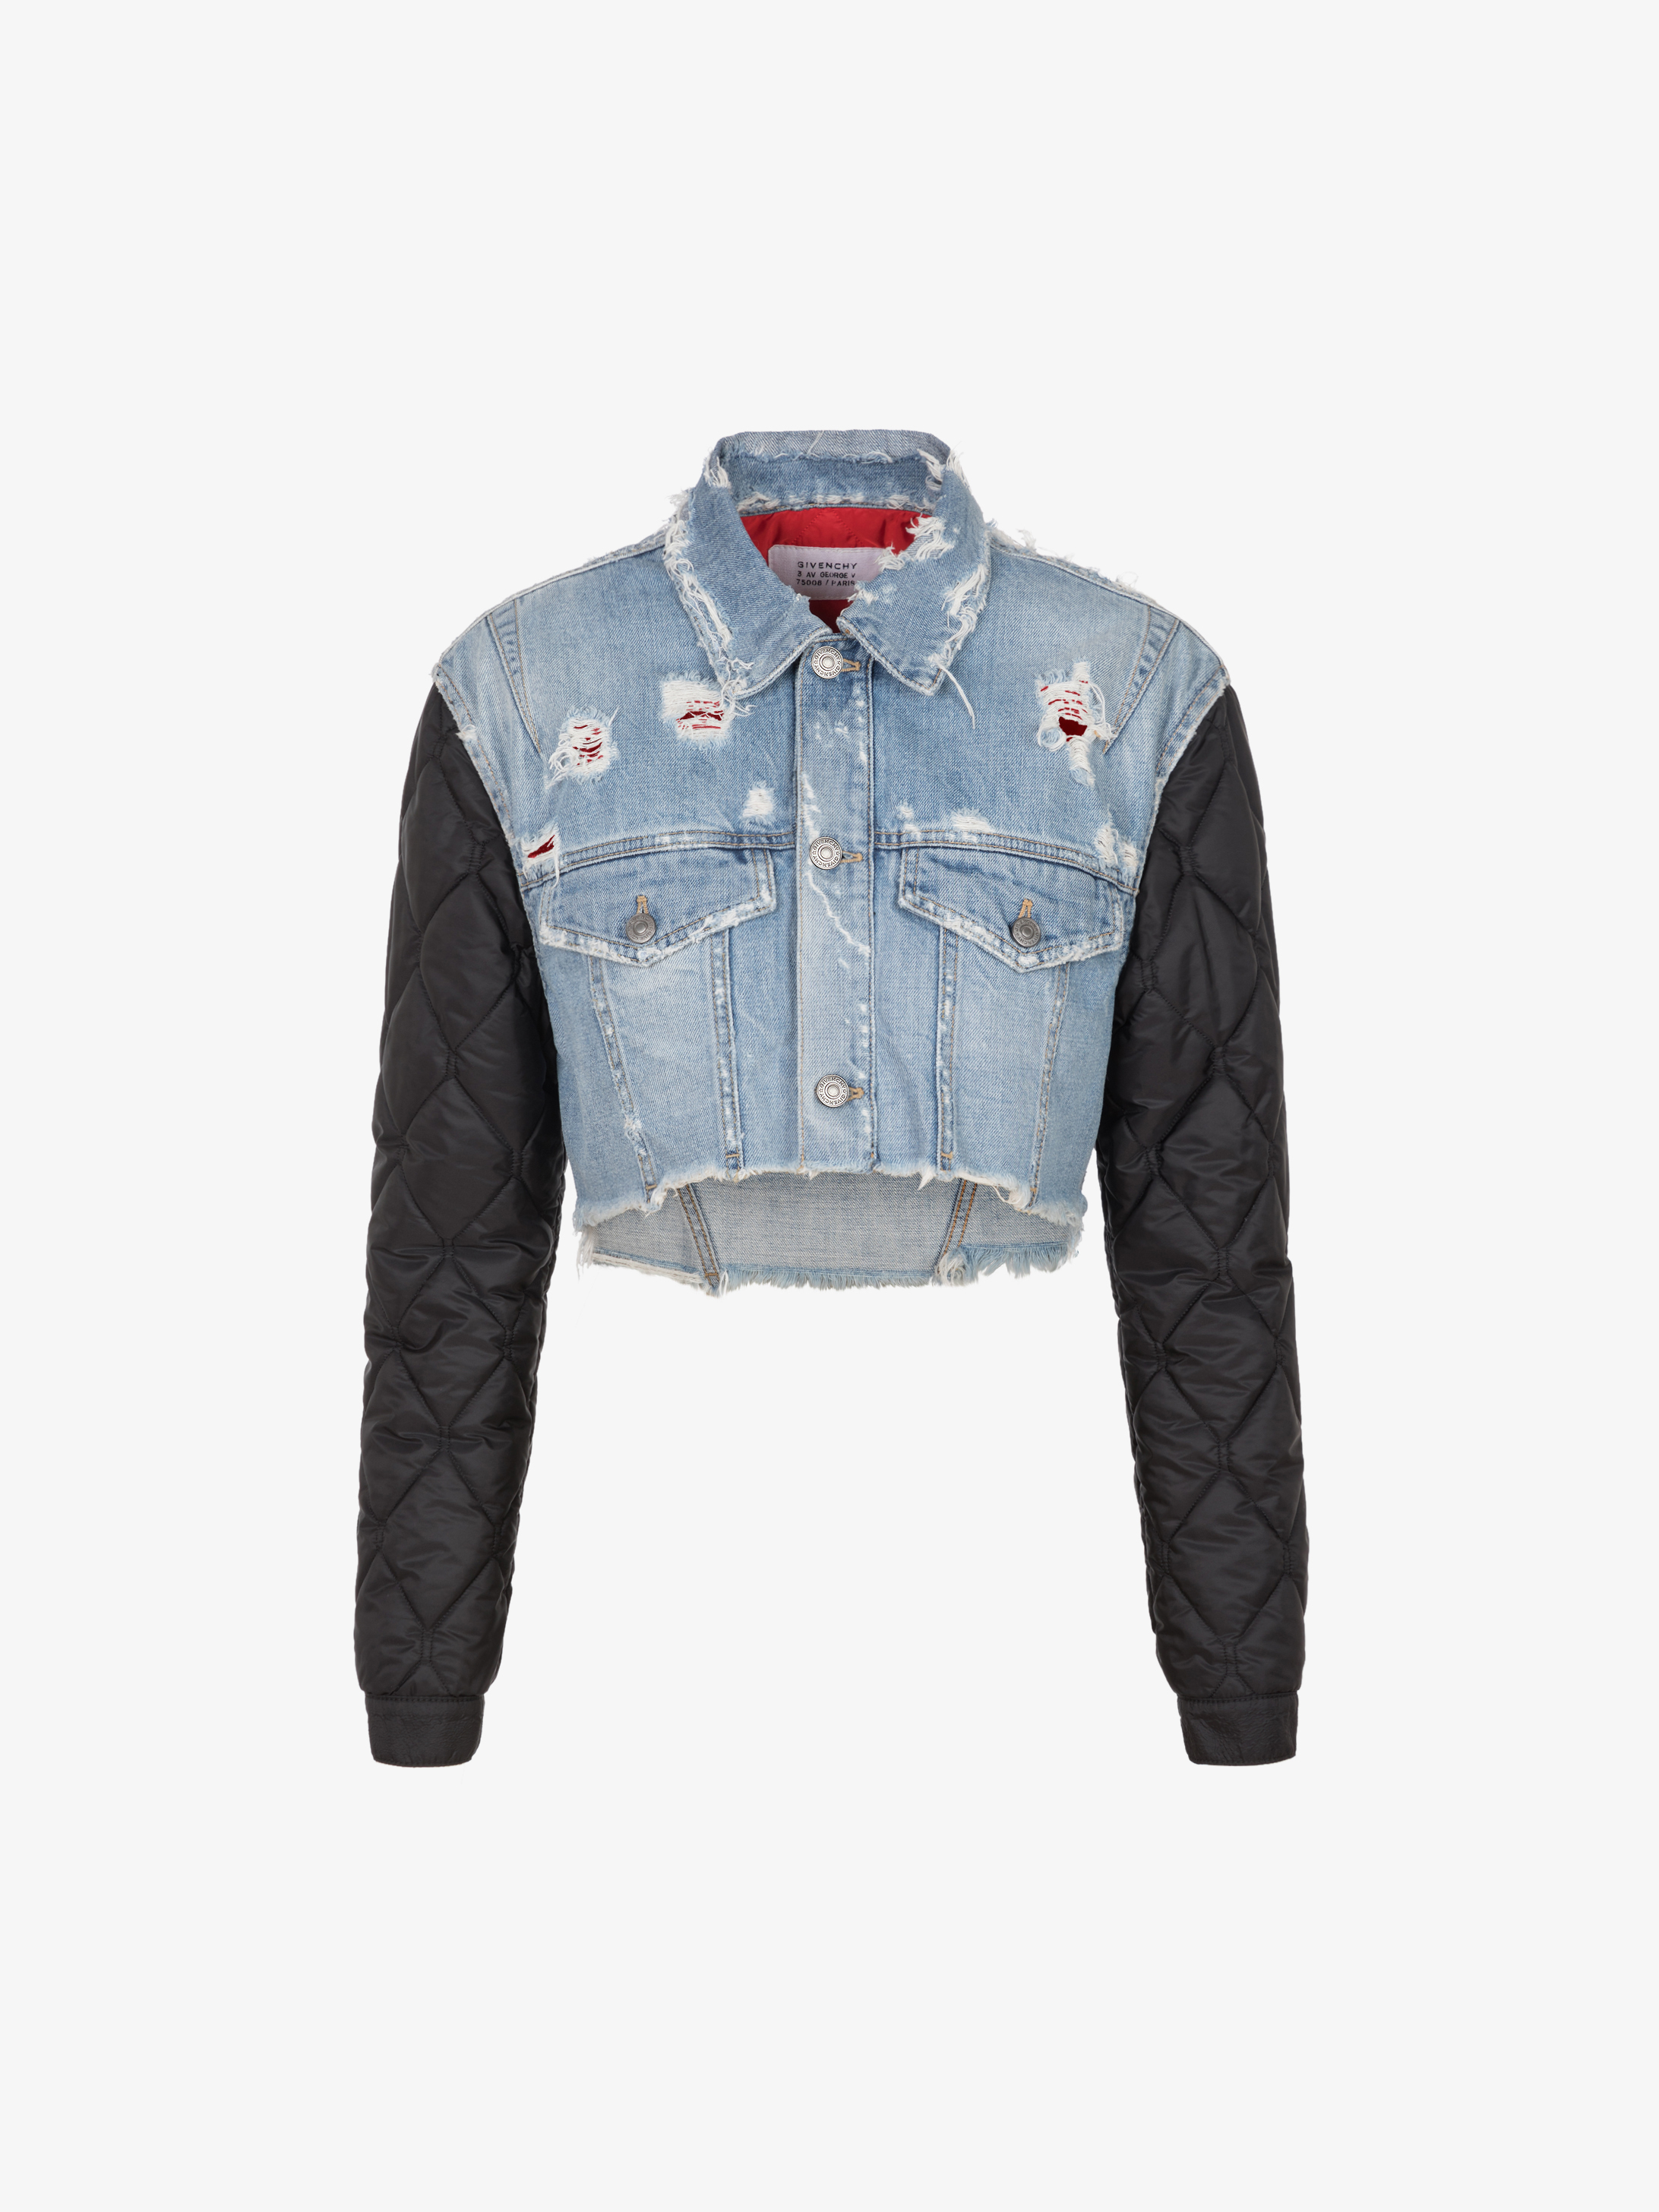 GIVENCHY short jacket in denim and quilted